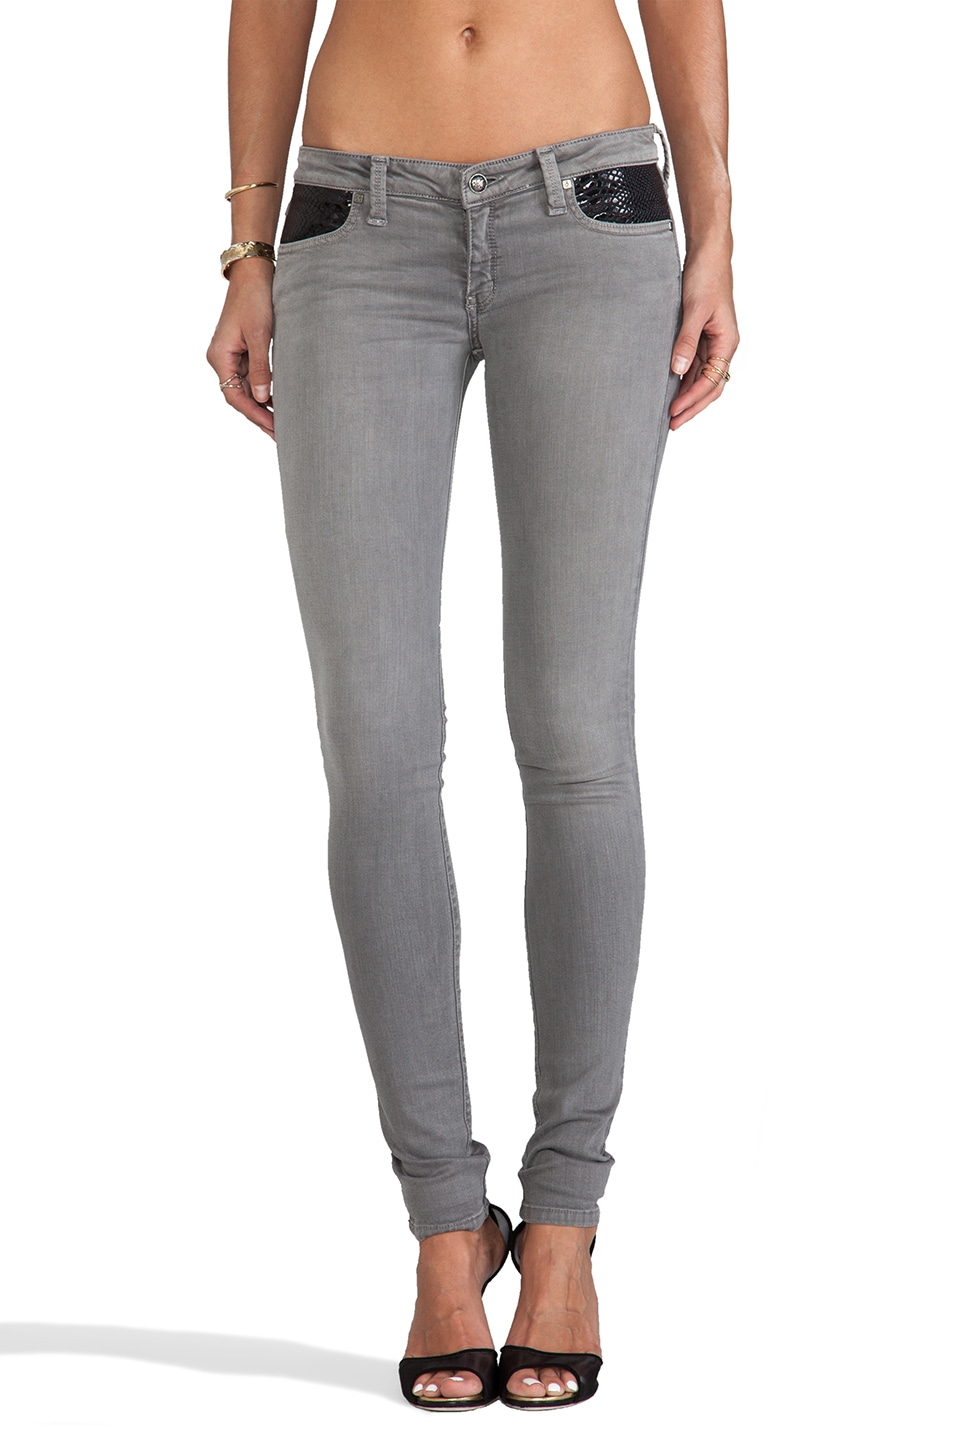 Frankie B. Jeans Serpentine Jegging in Silver